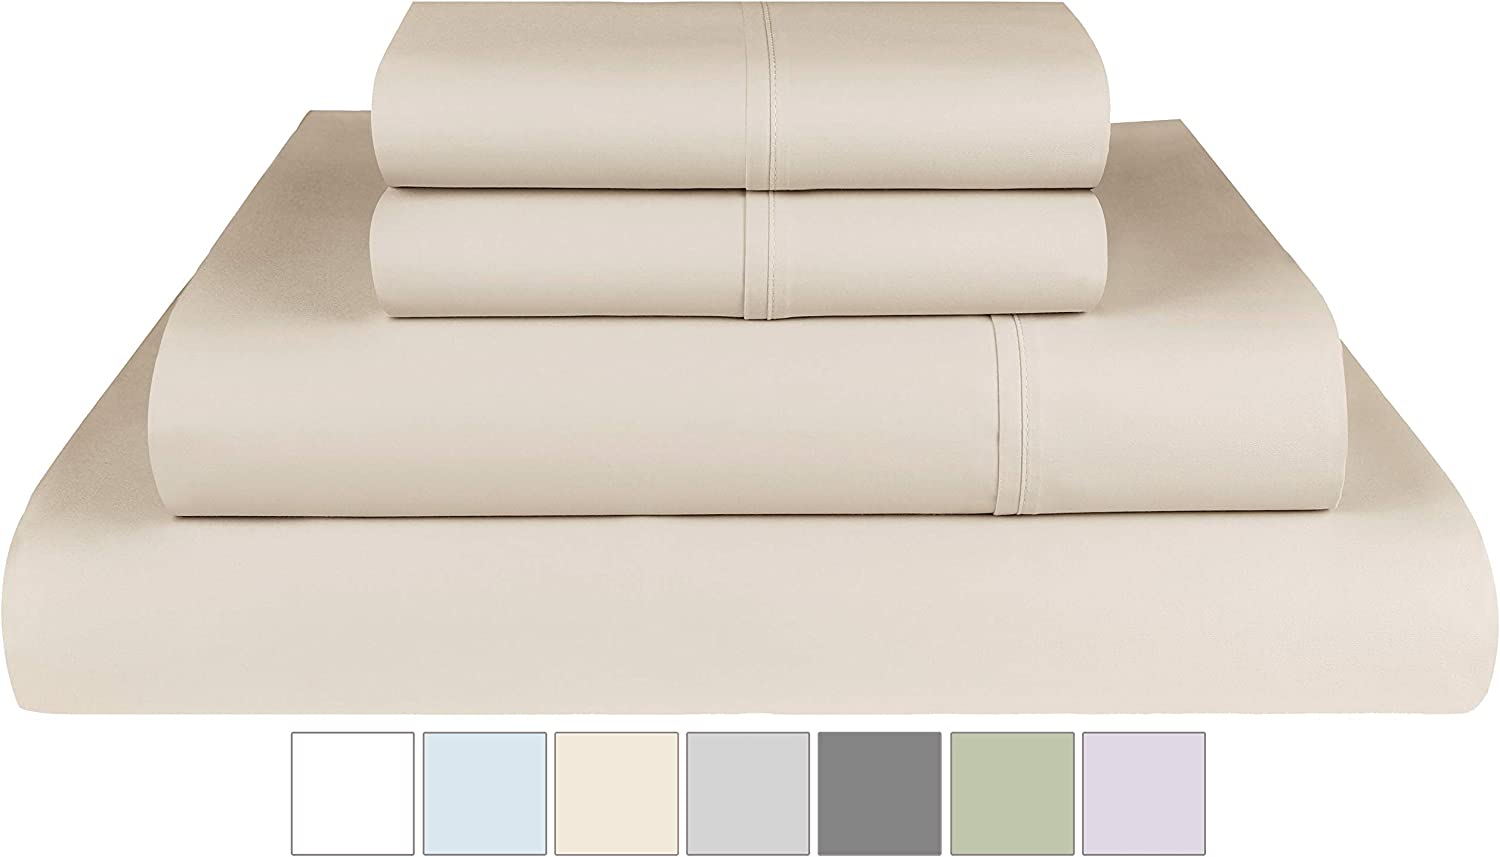 Threadmill Home Linen 400 Thread Count 100% Extra-Long Staple Cotton Sheets, Full Sheets, Luxury Bedding, Full Sheets 4 Piece Set,Smooth Sateen,Beige